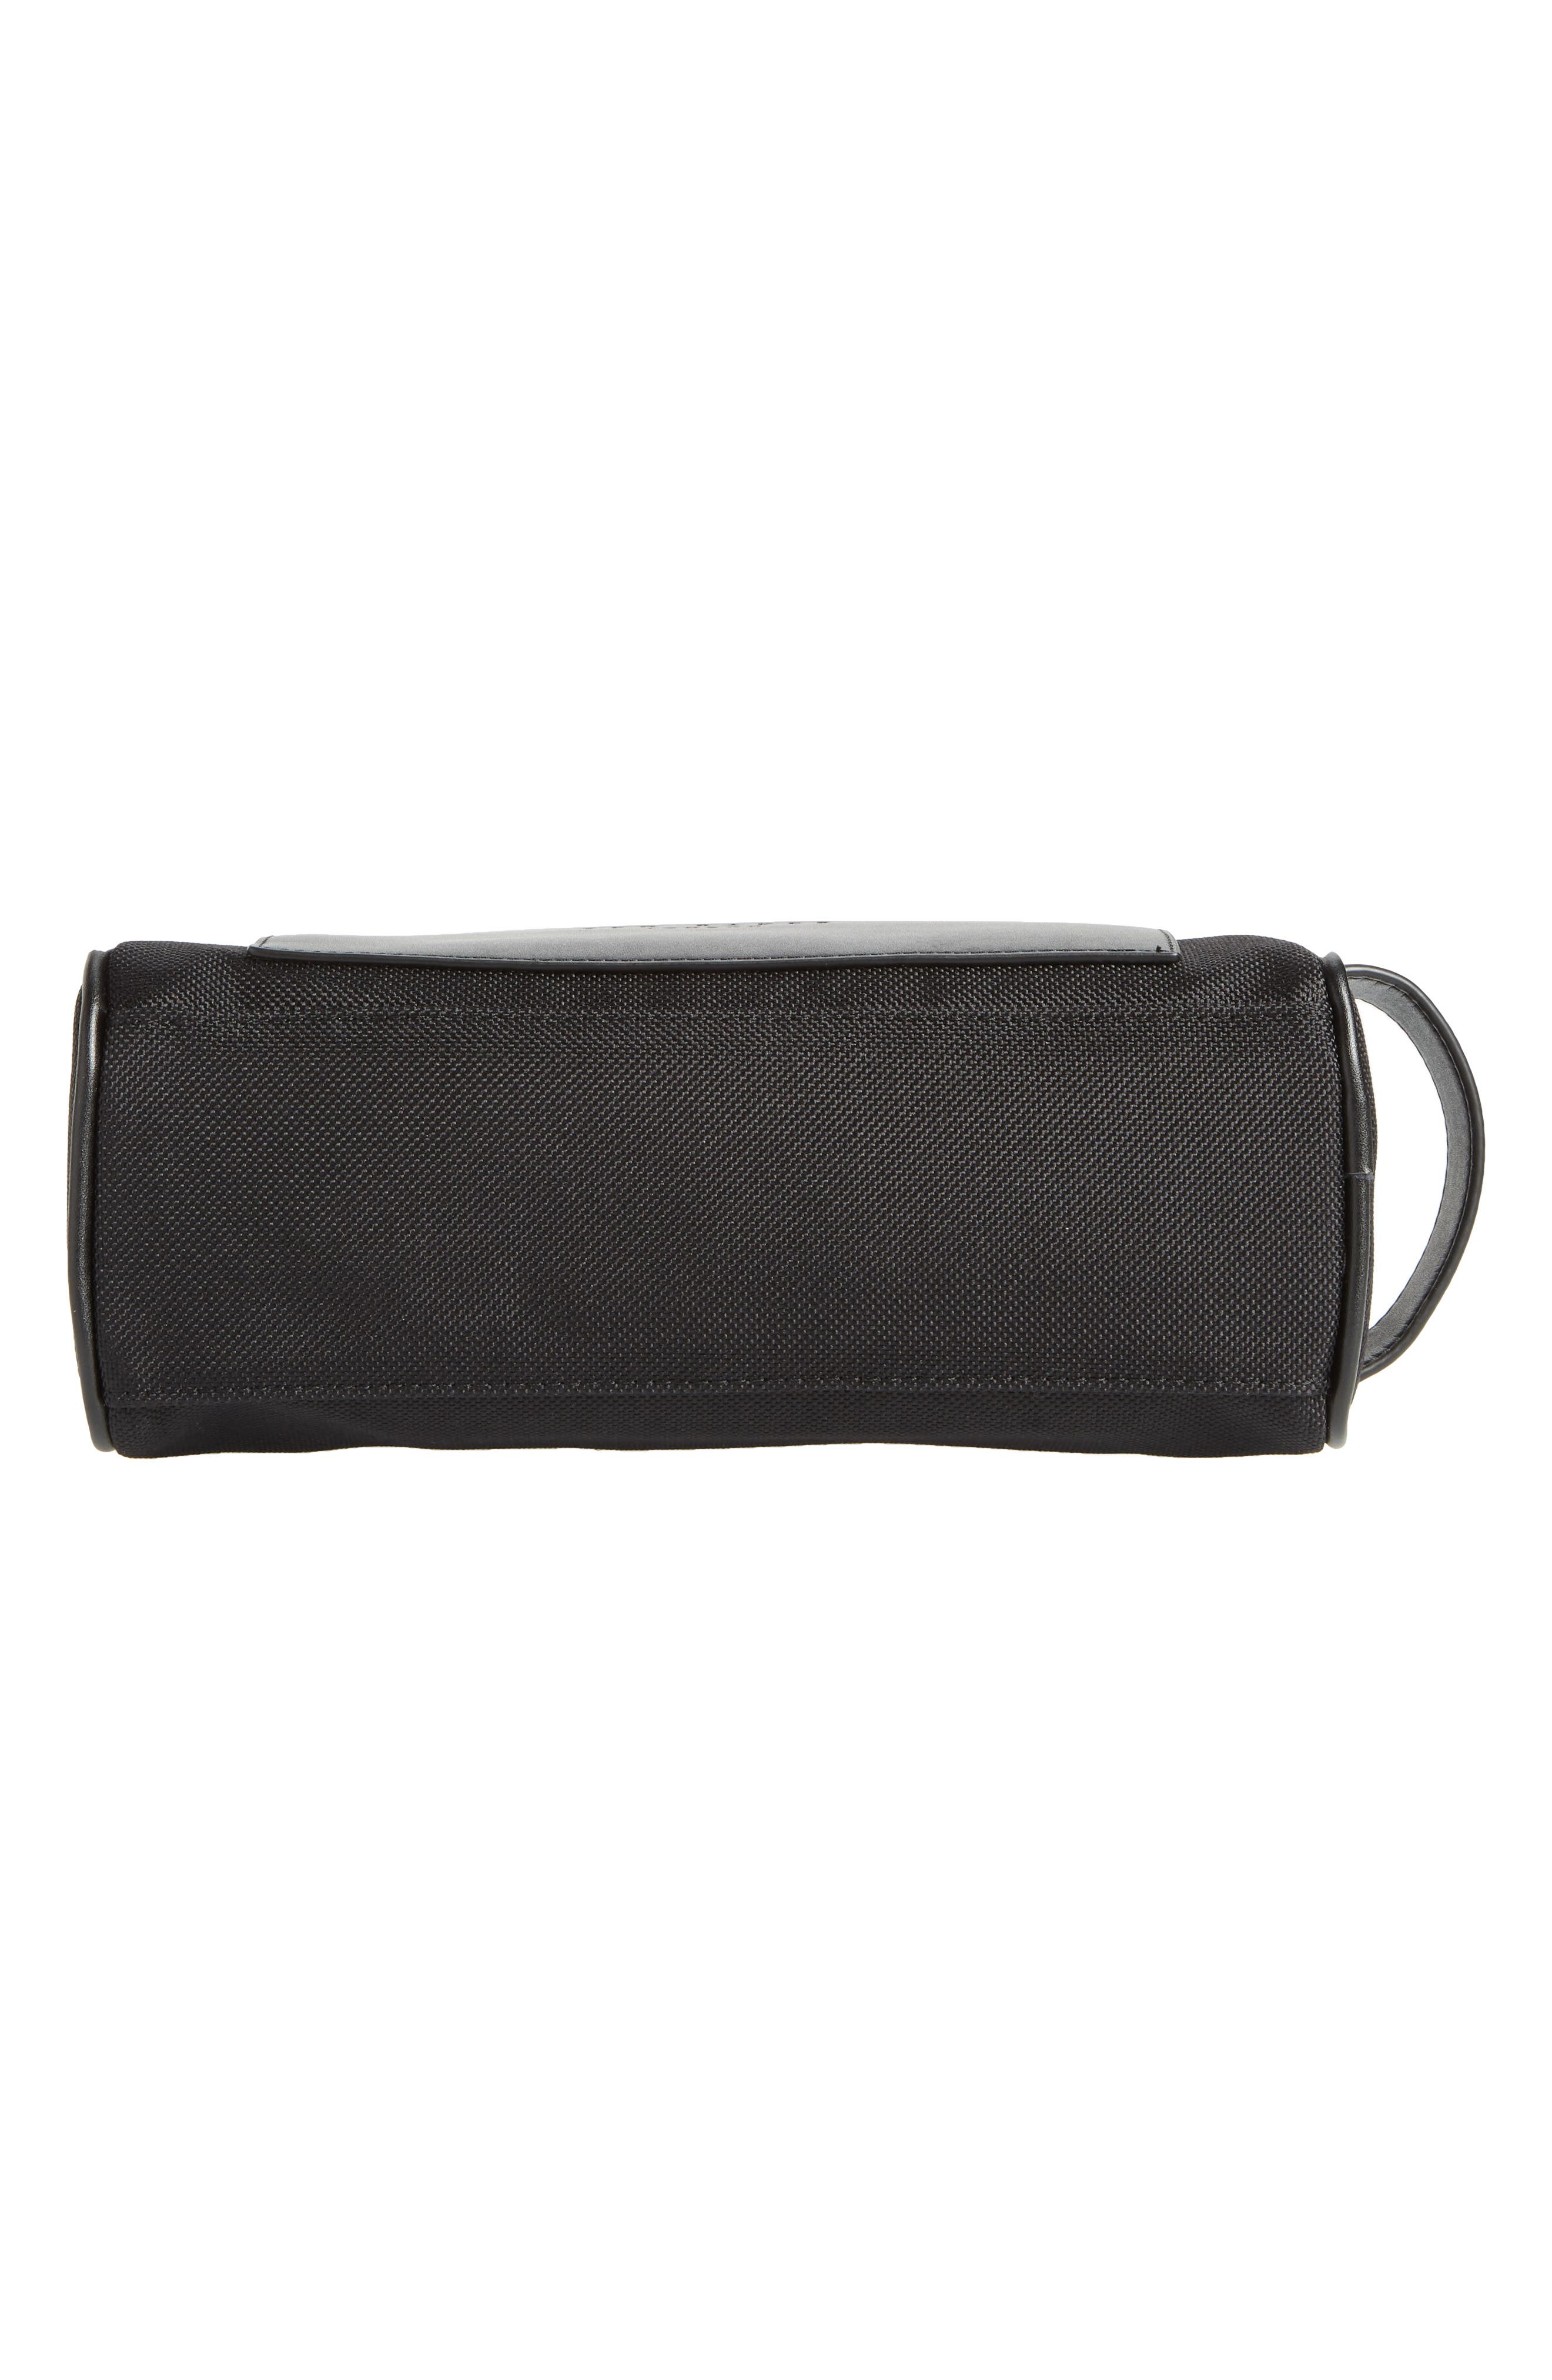 TED BAKER LONDON,                             Blends Dopp Kit,                             Alternate thumbnail 5, color,                             BLACK